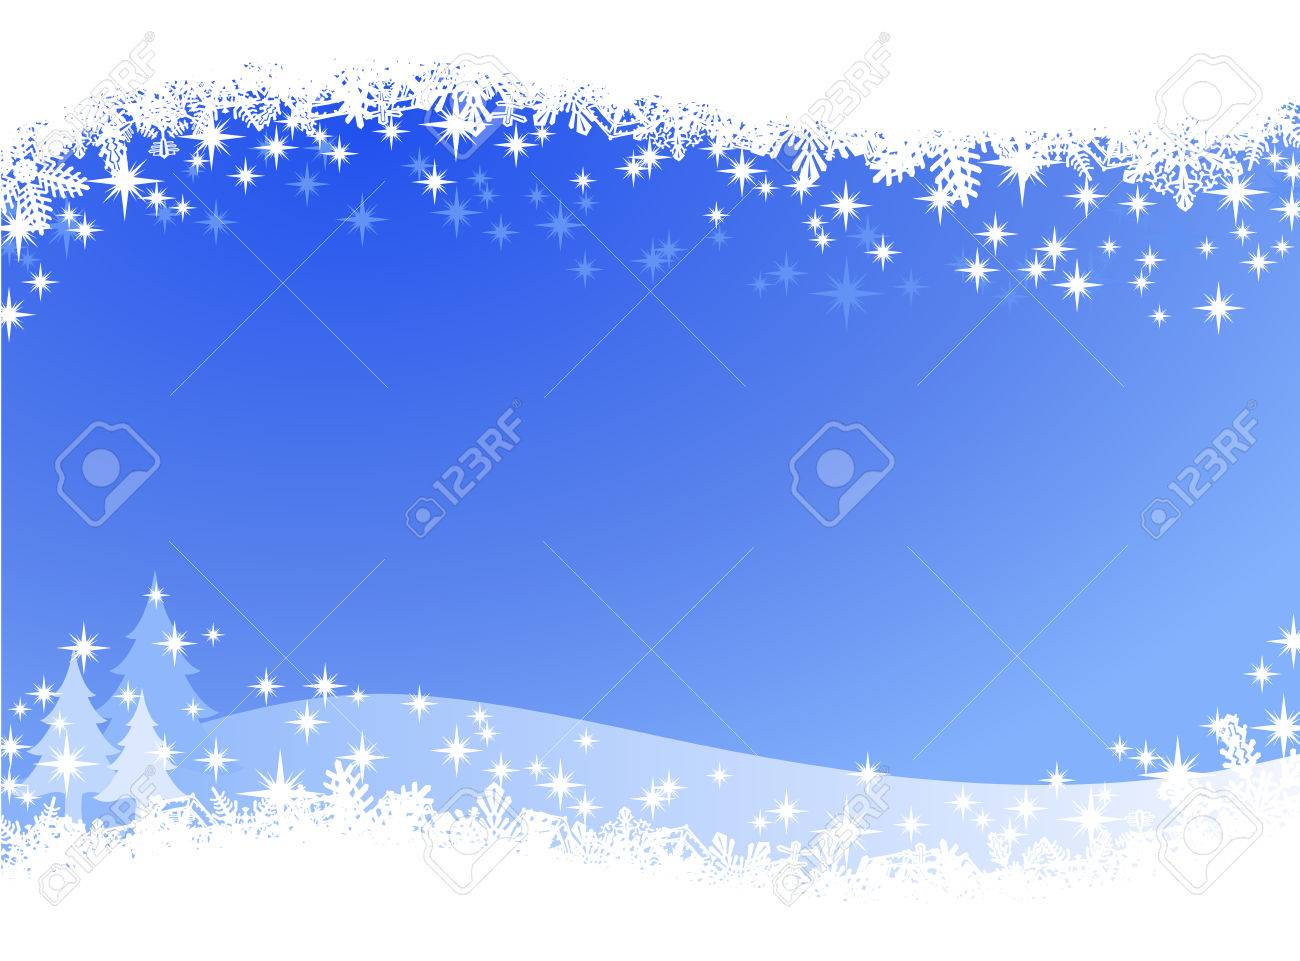 Christmas winter sky lights background. Sparkling Christmas card banner with pine trees and many different snowflakes on the border. - 45649159